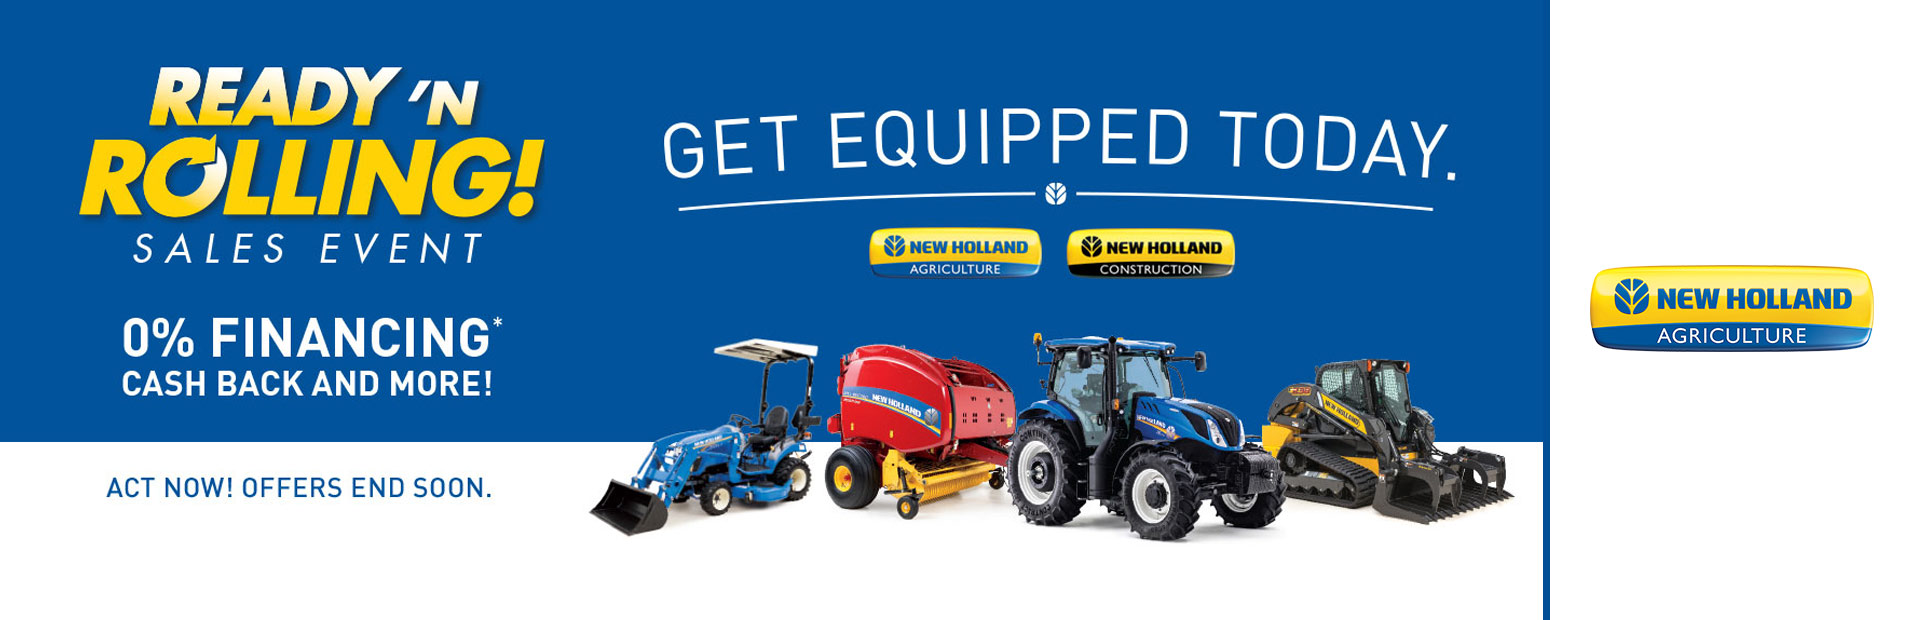 New Holland Agriculture: Ready N' Rolling Sales Event